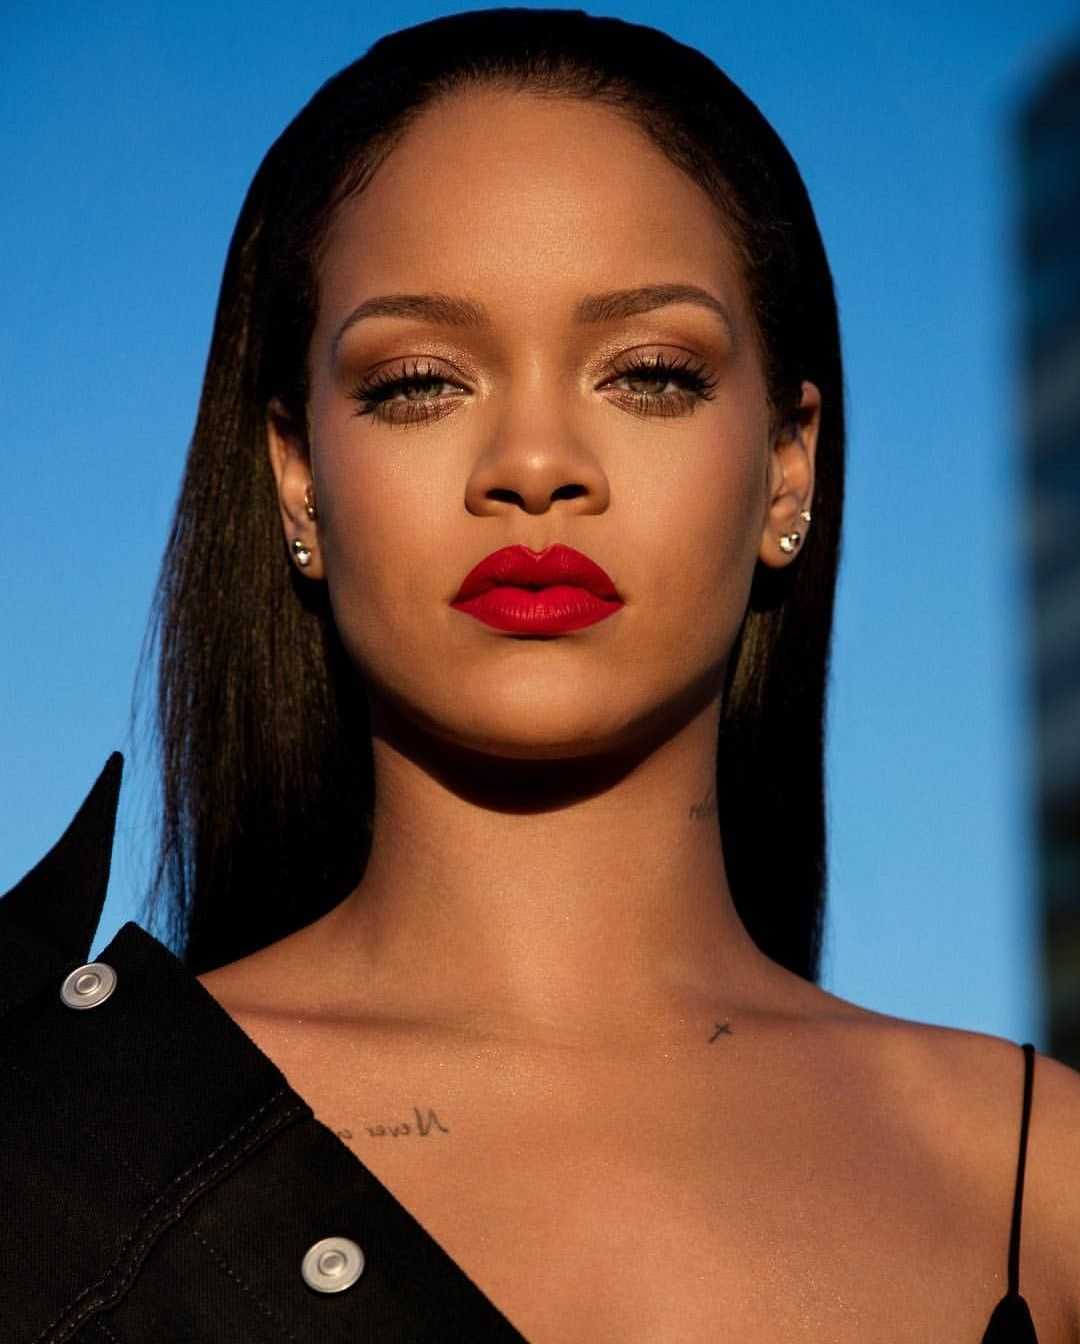 Pin by Zoabelled on Inspiration (With images) Rihanna